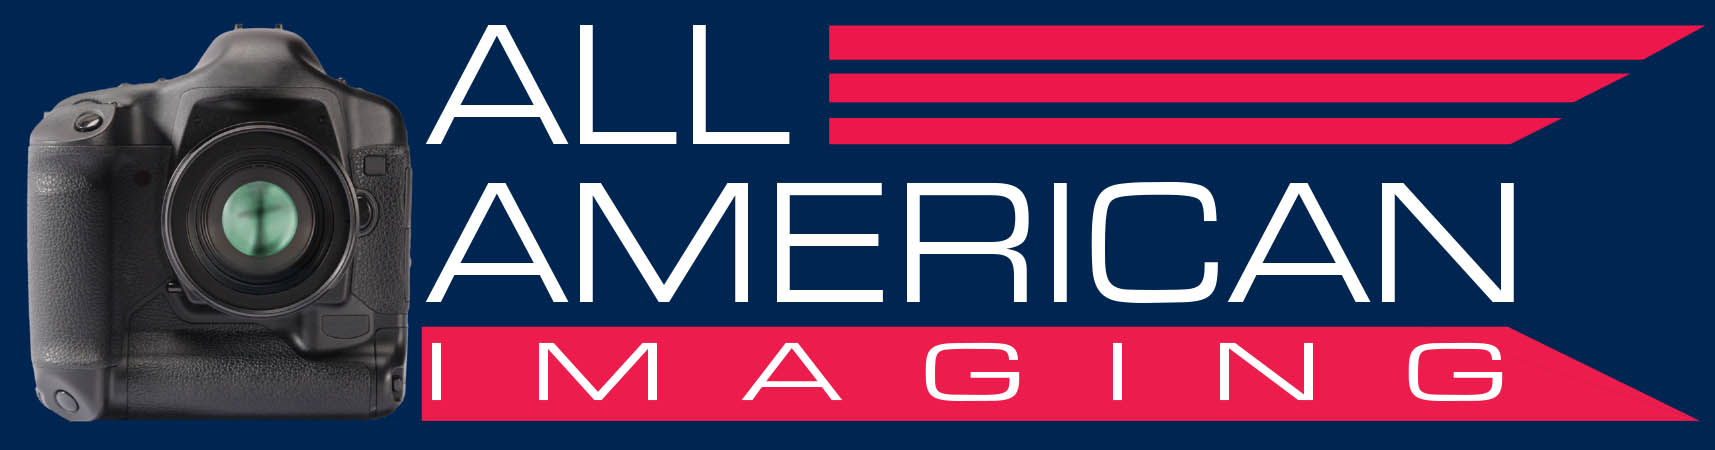 All American Imaging